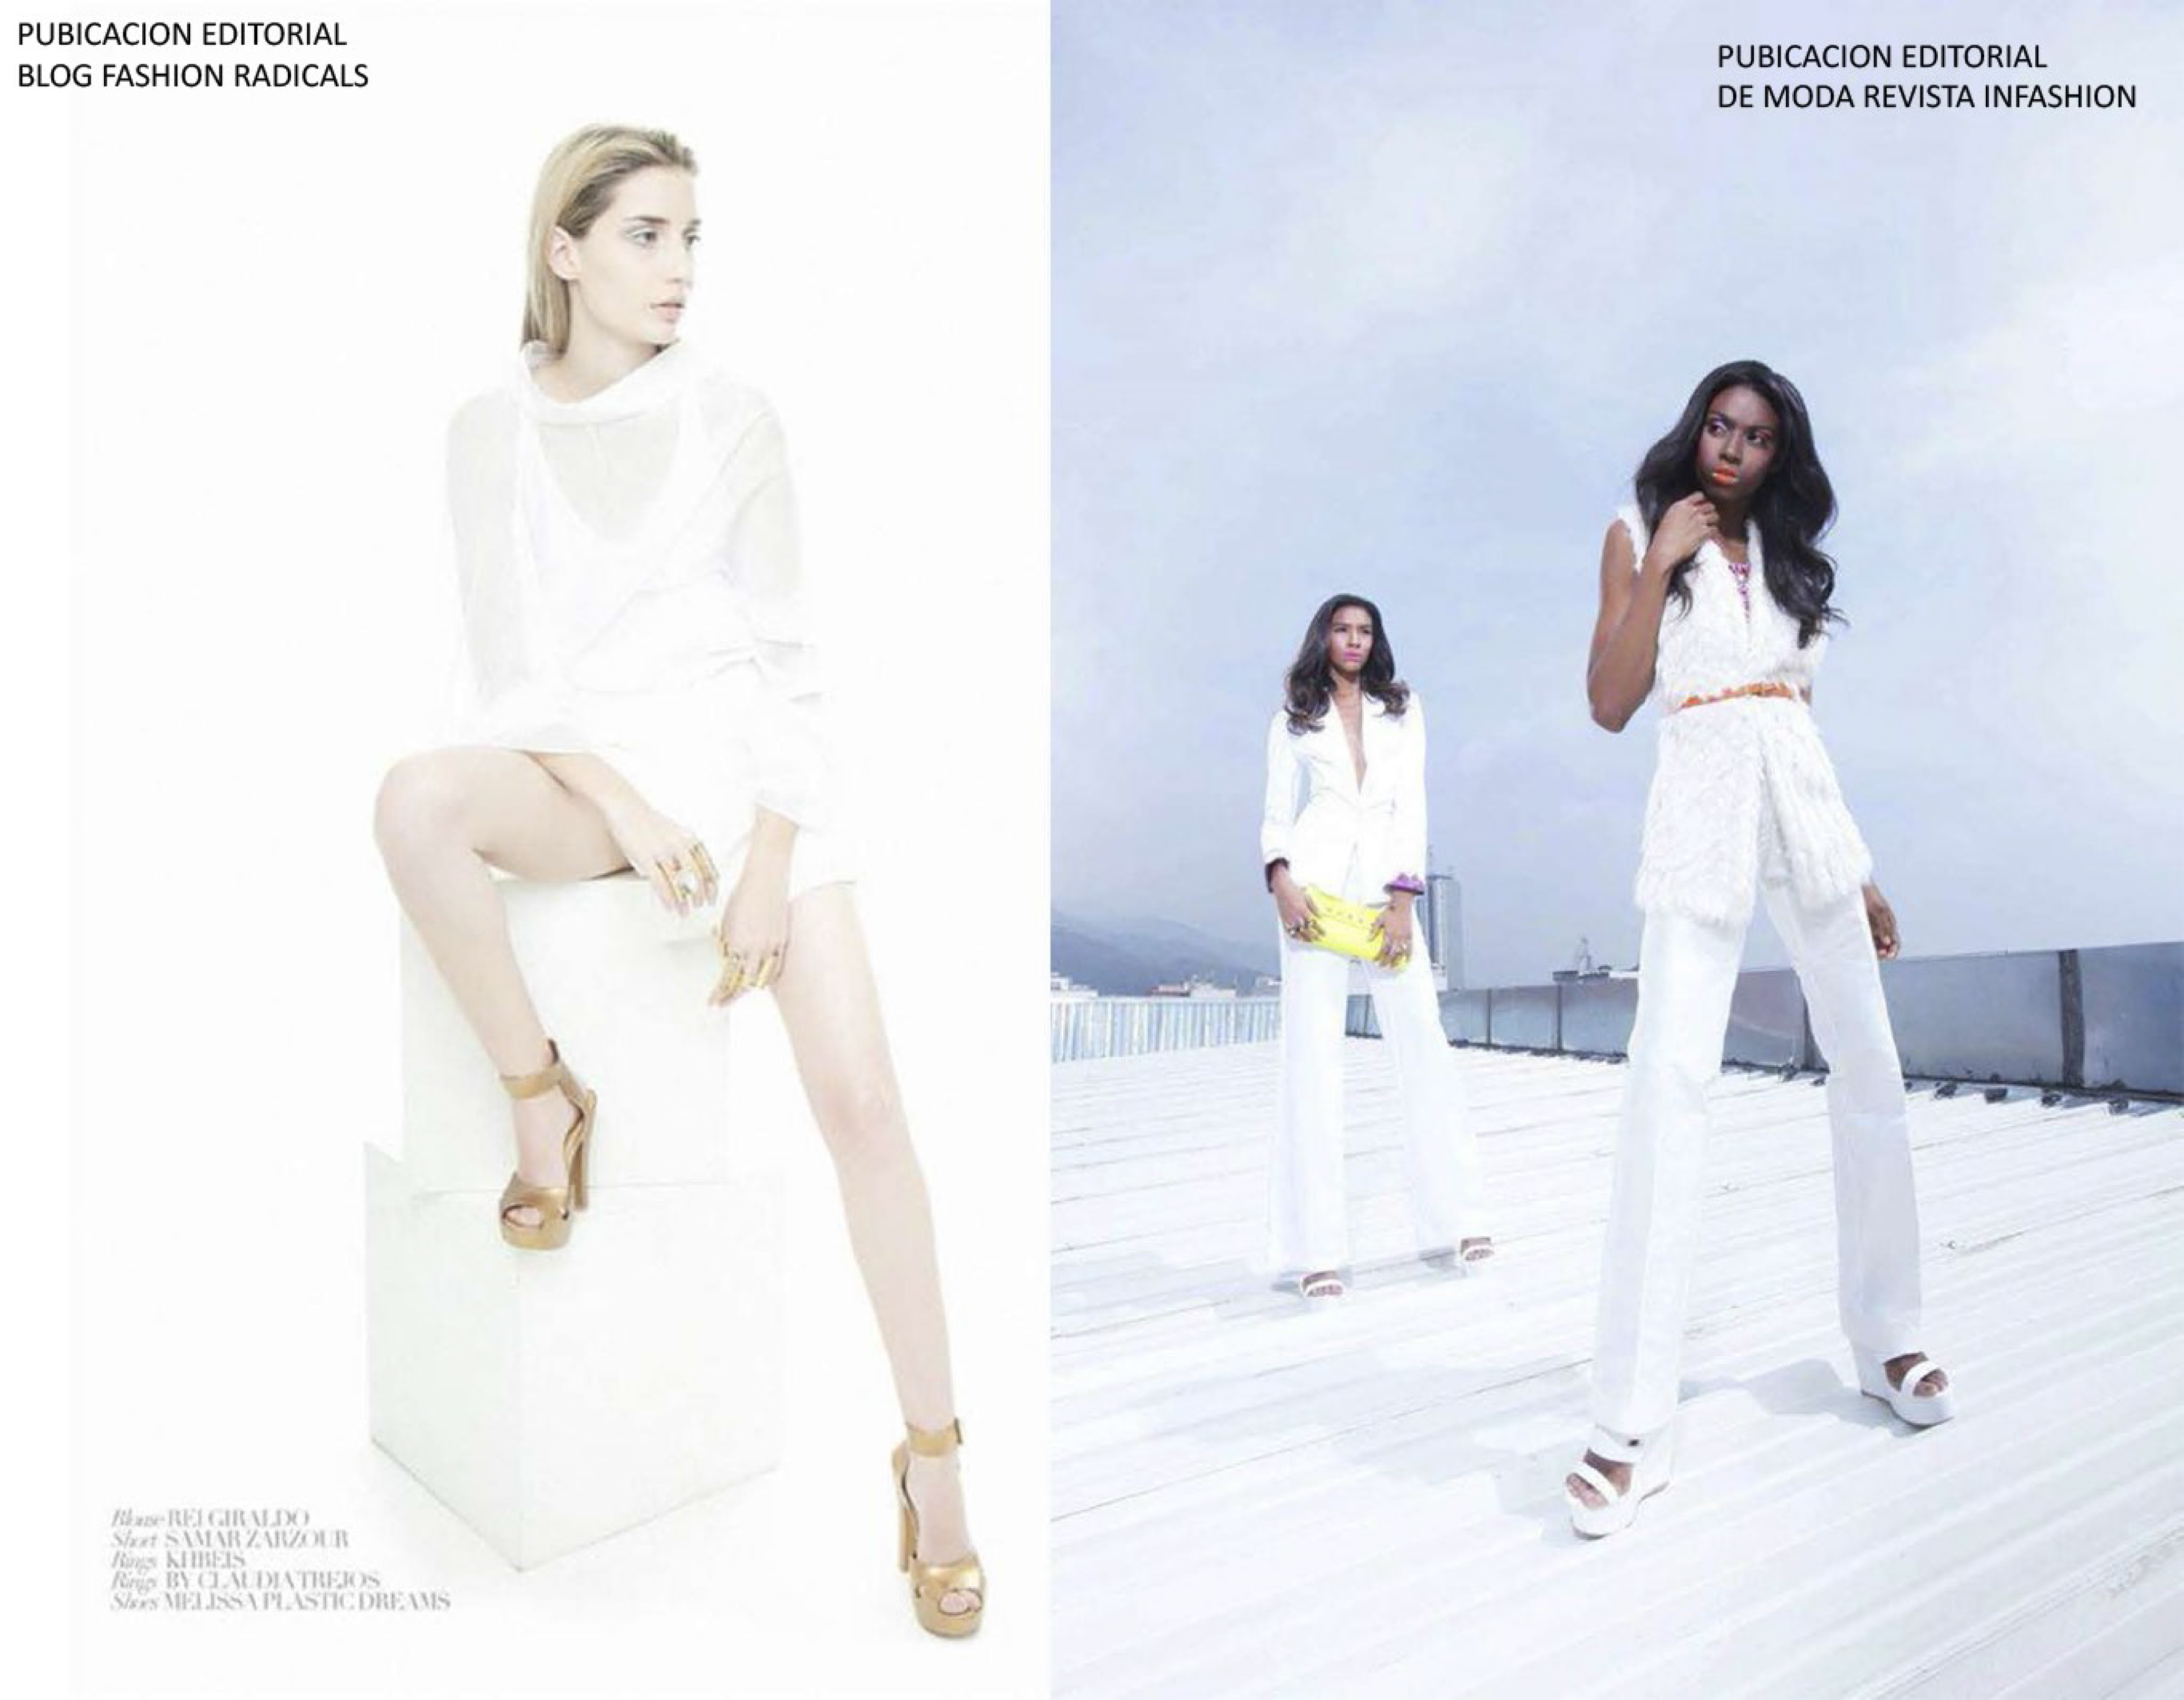 FASHION_rADICALS_REVISTA_INFASHION_REI_GIRALDO_PRENSA_PRESS